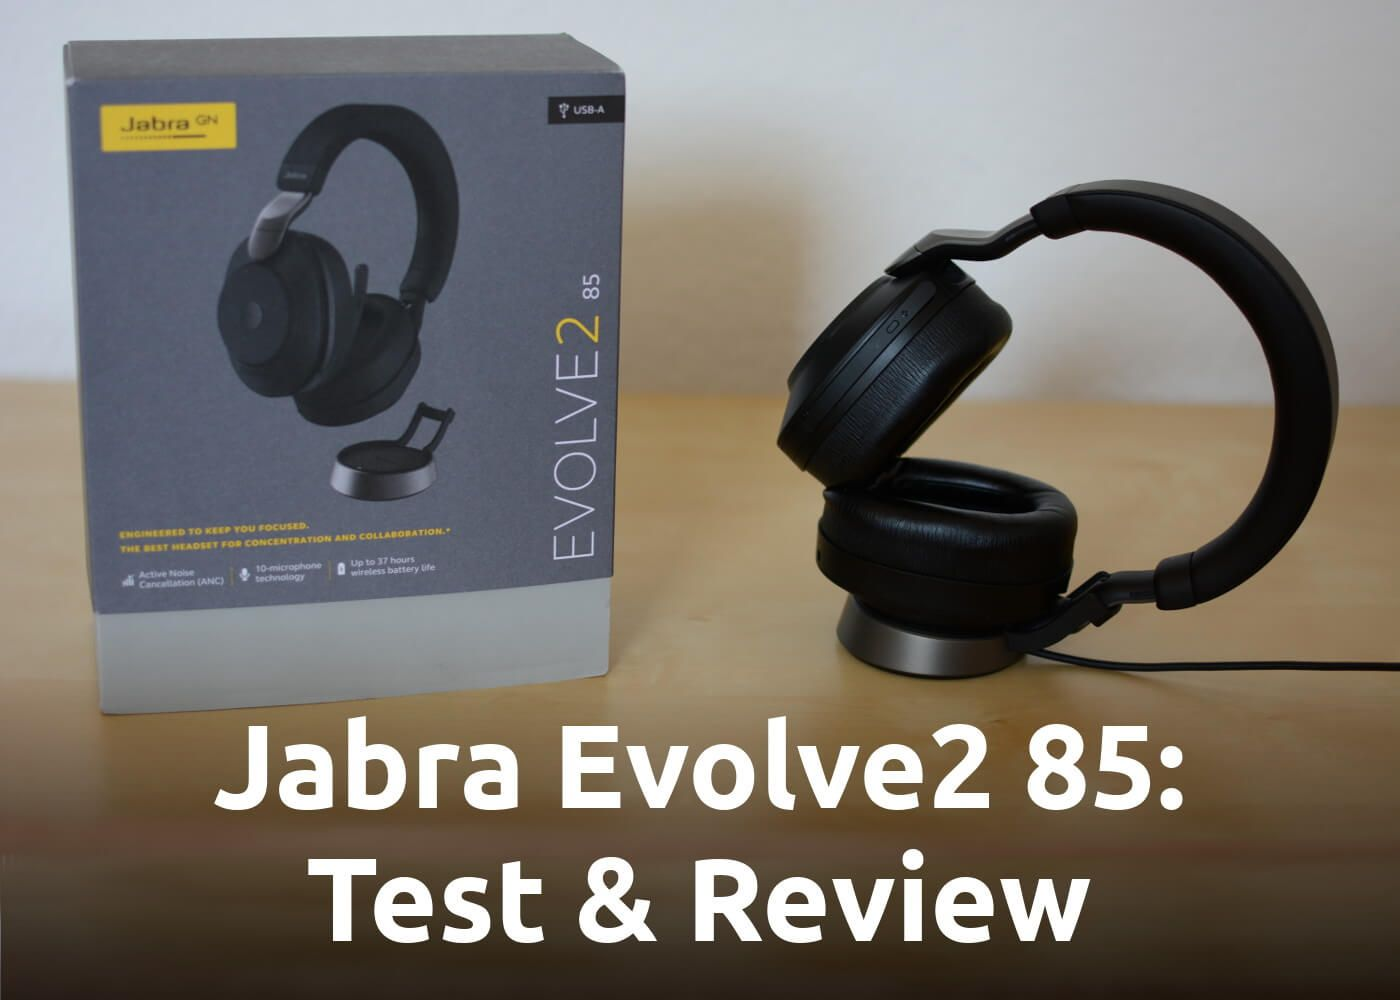 Jabra Evolve2 85: Test, Review & Hands-on the Bluetooth Headset